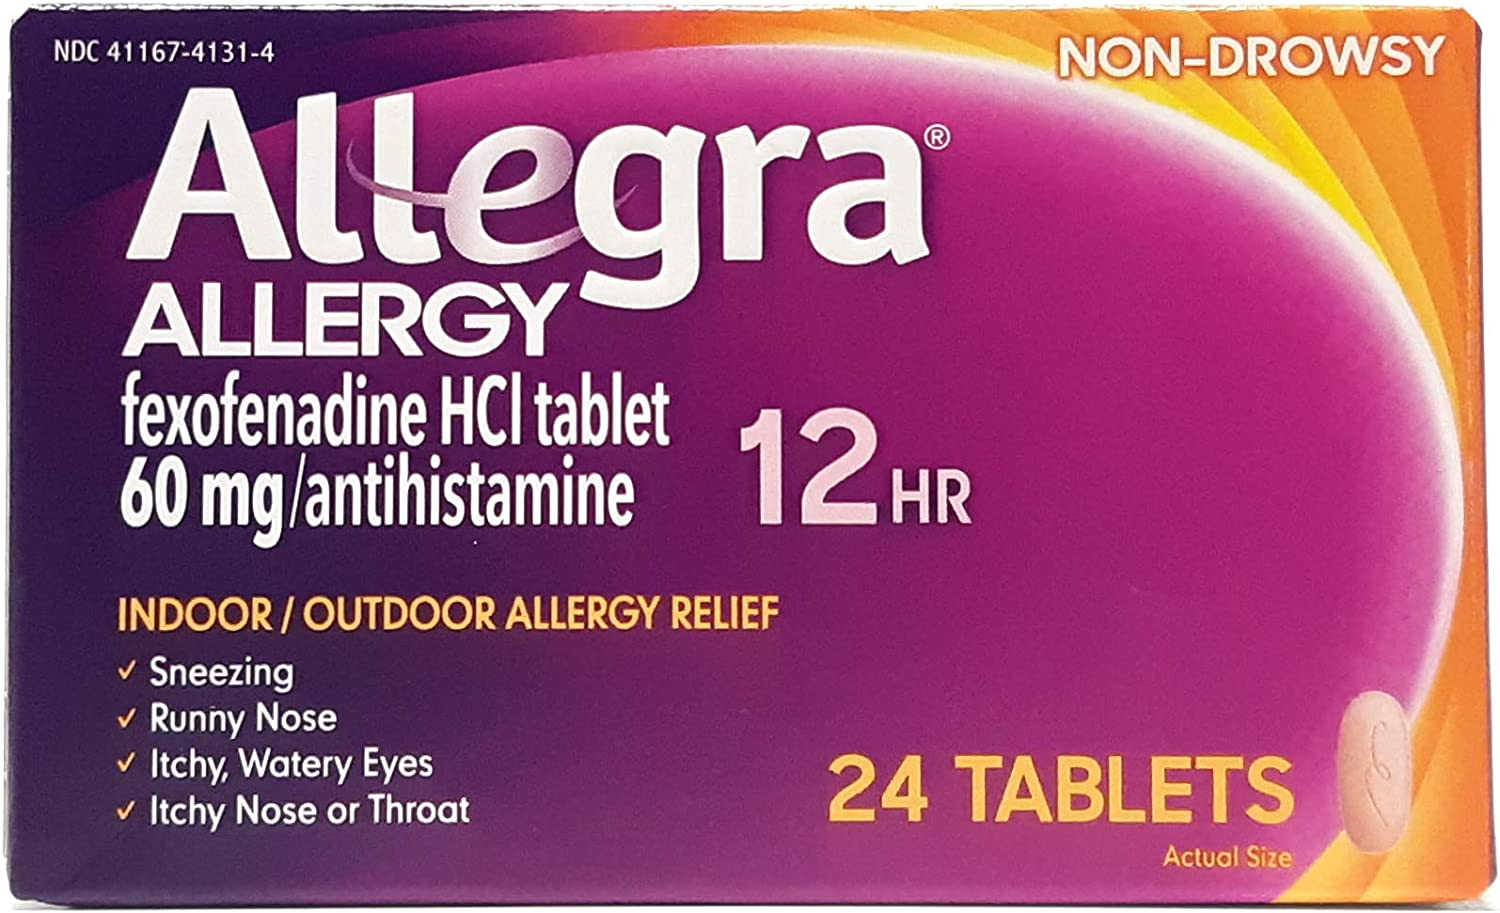 Allegra 12 Hour 55% OFF Allergy Relief 60mg New Shipping Free Shipping - 24Ct Tablets Pack 3 of